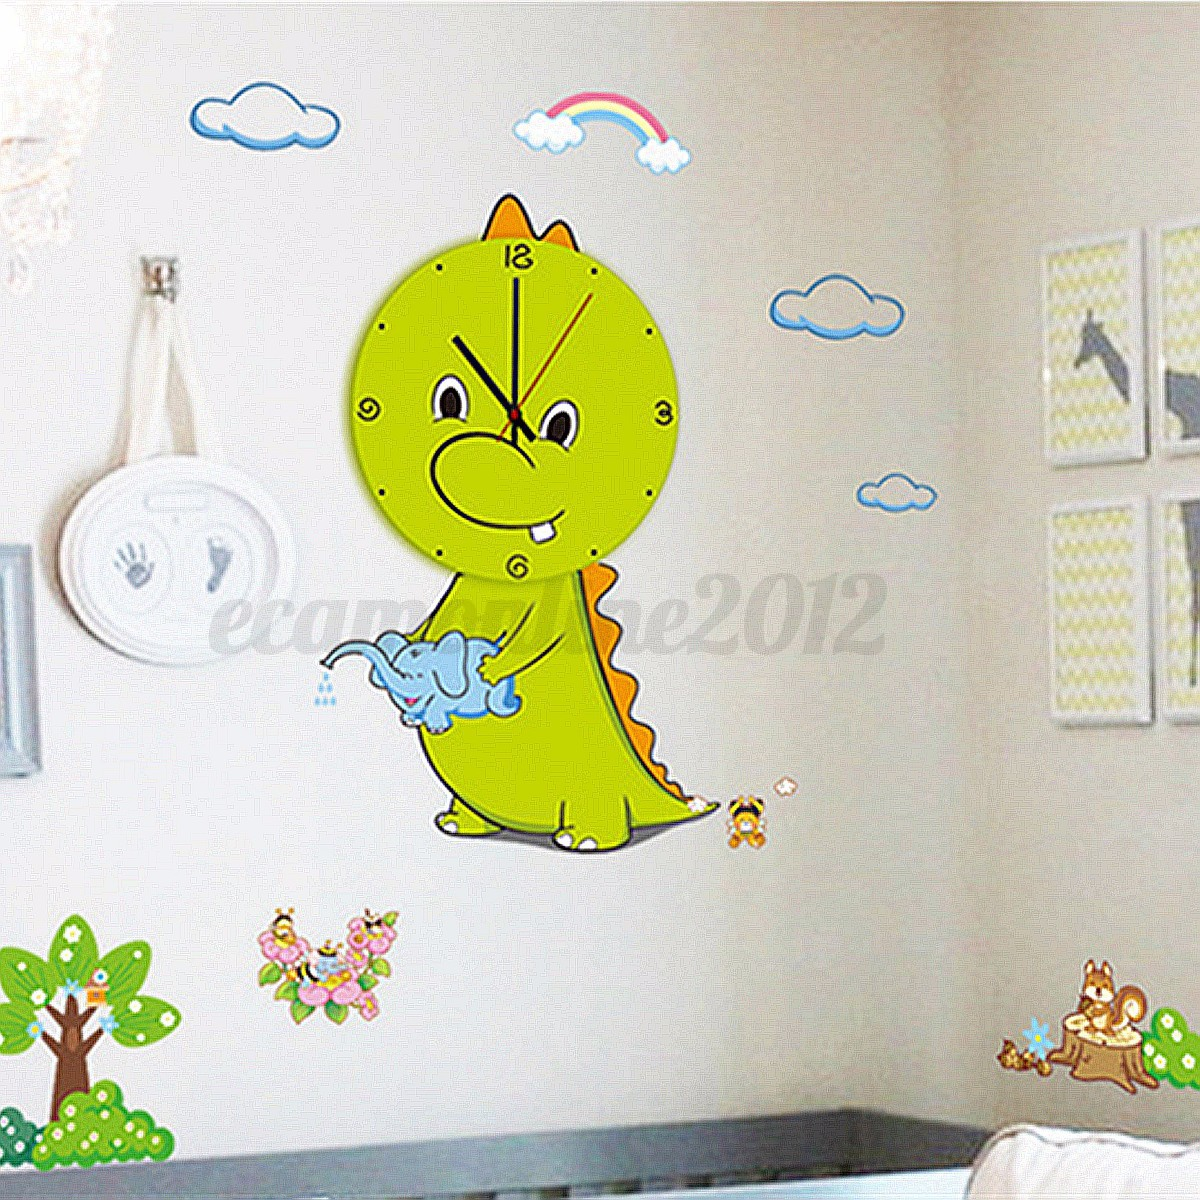 3d diy dibujos animal reloj de pared con pegatinas de for Pegatinas pared ninos